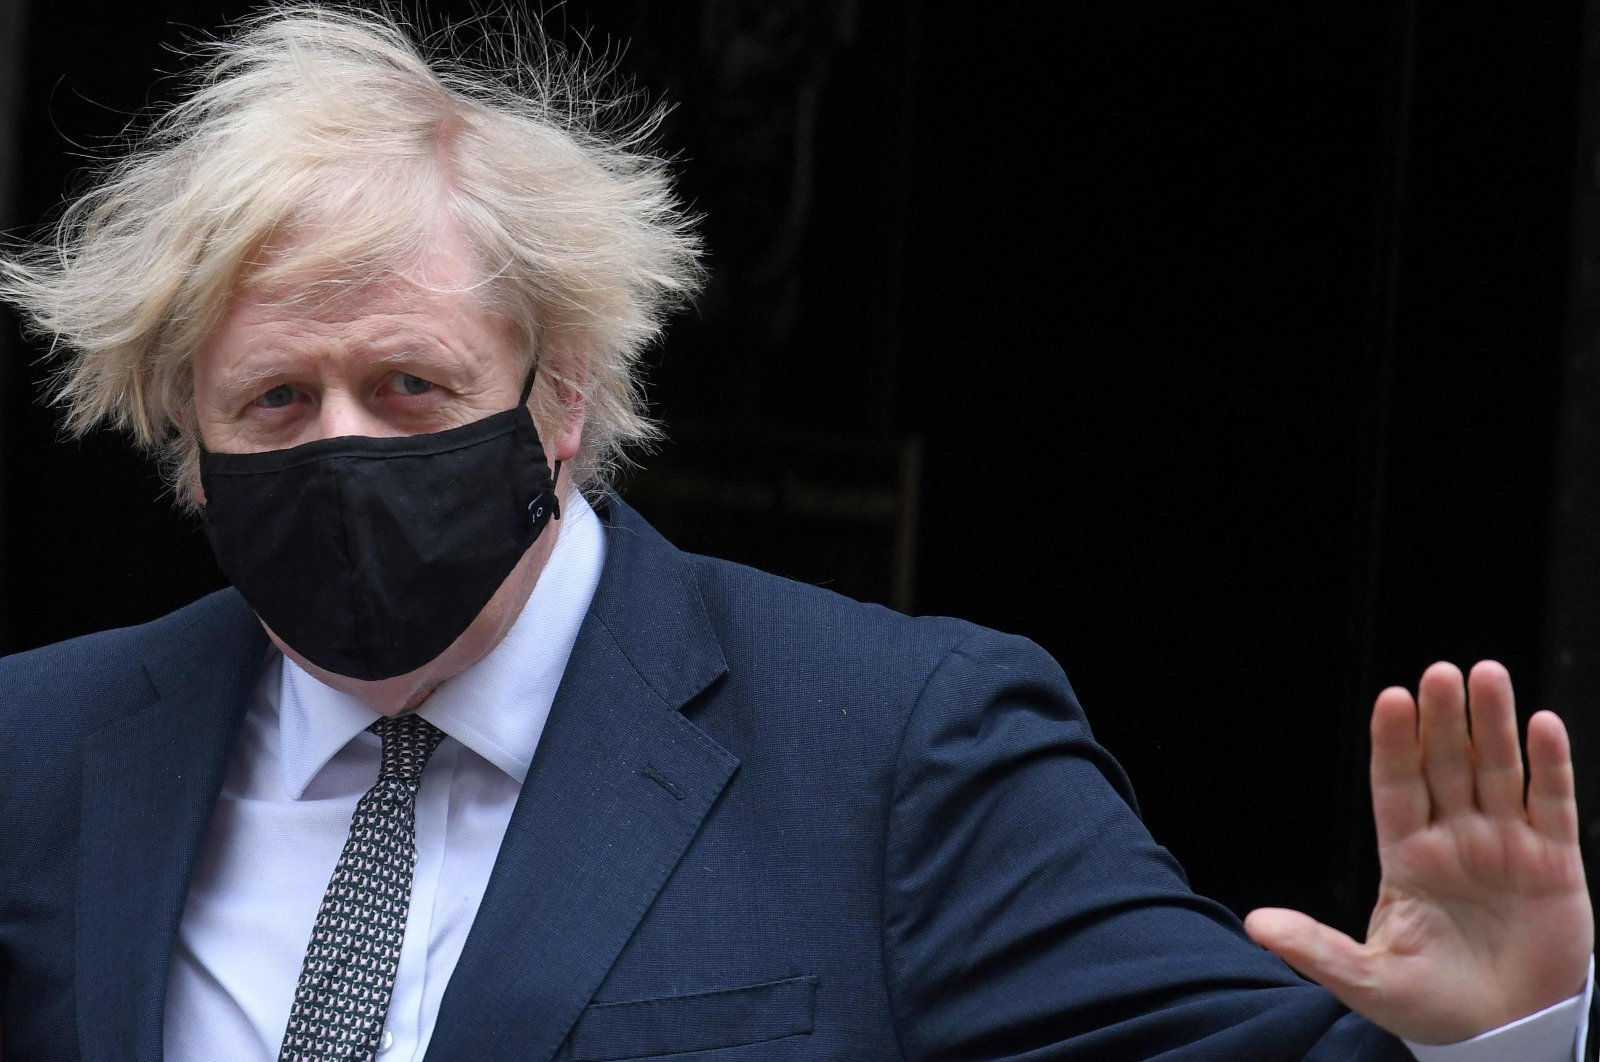 Britain's Prime Minister Boris Johnson, wearing a face mask, leaves 10 Downing Street in central London, U.K., March 24, 2021. (AFP Photo)